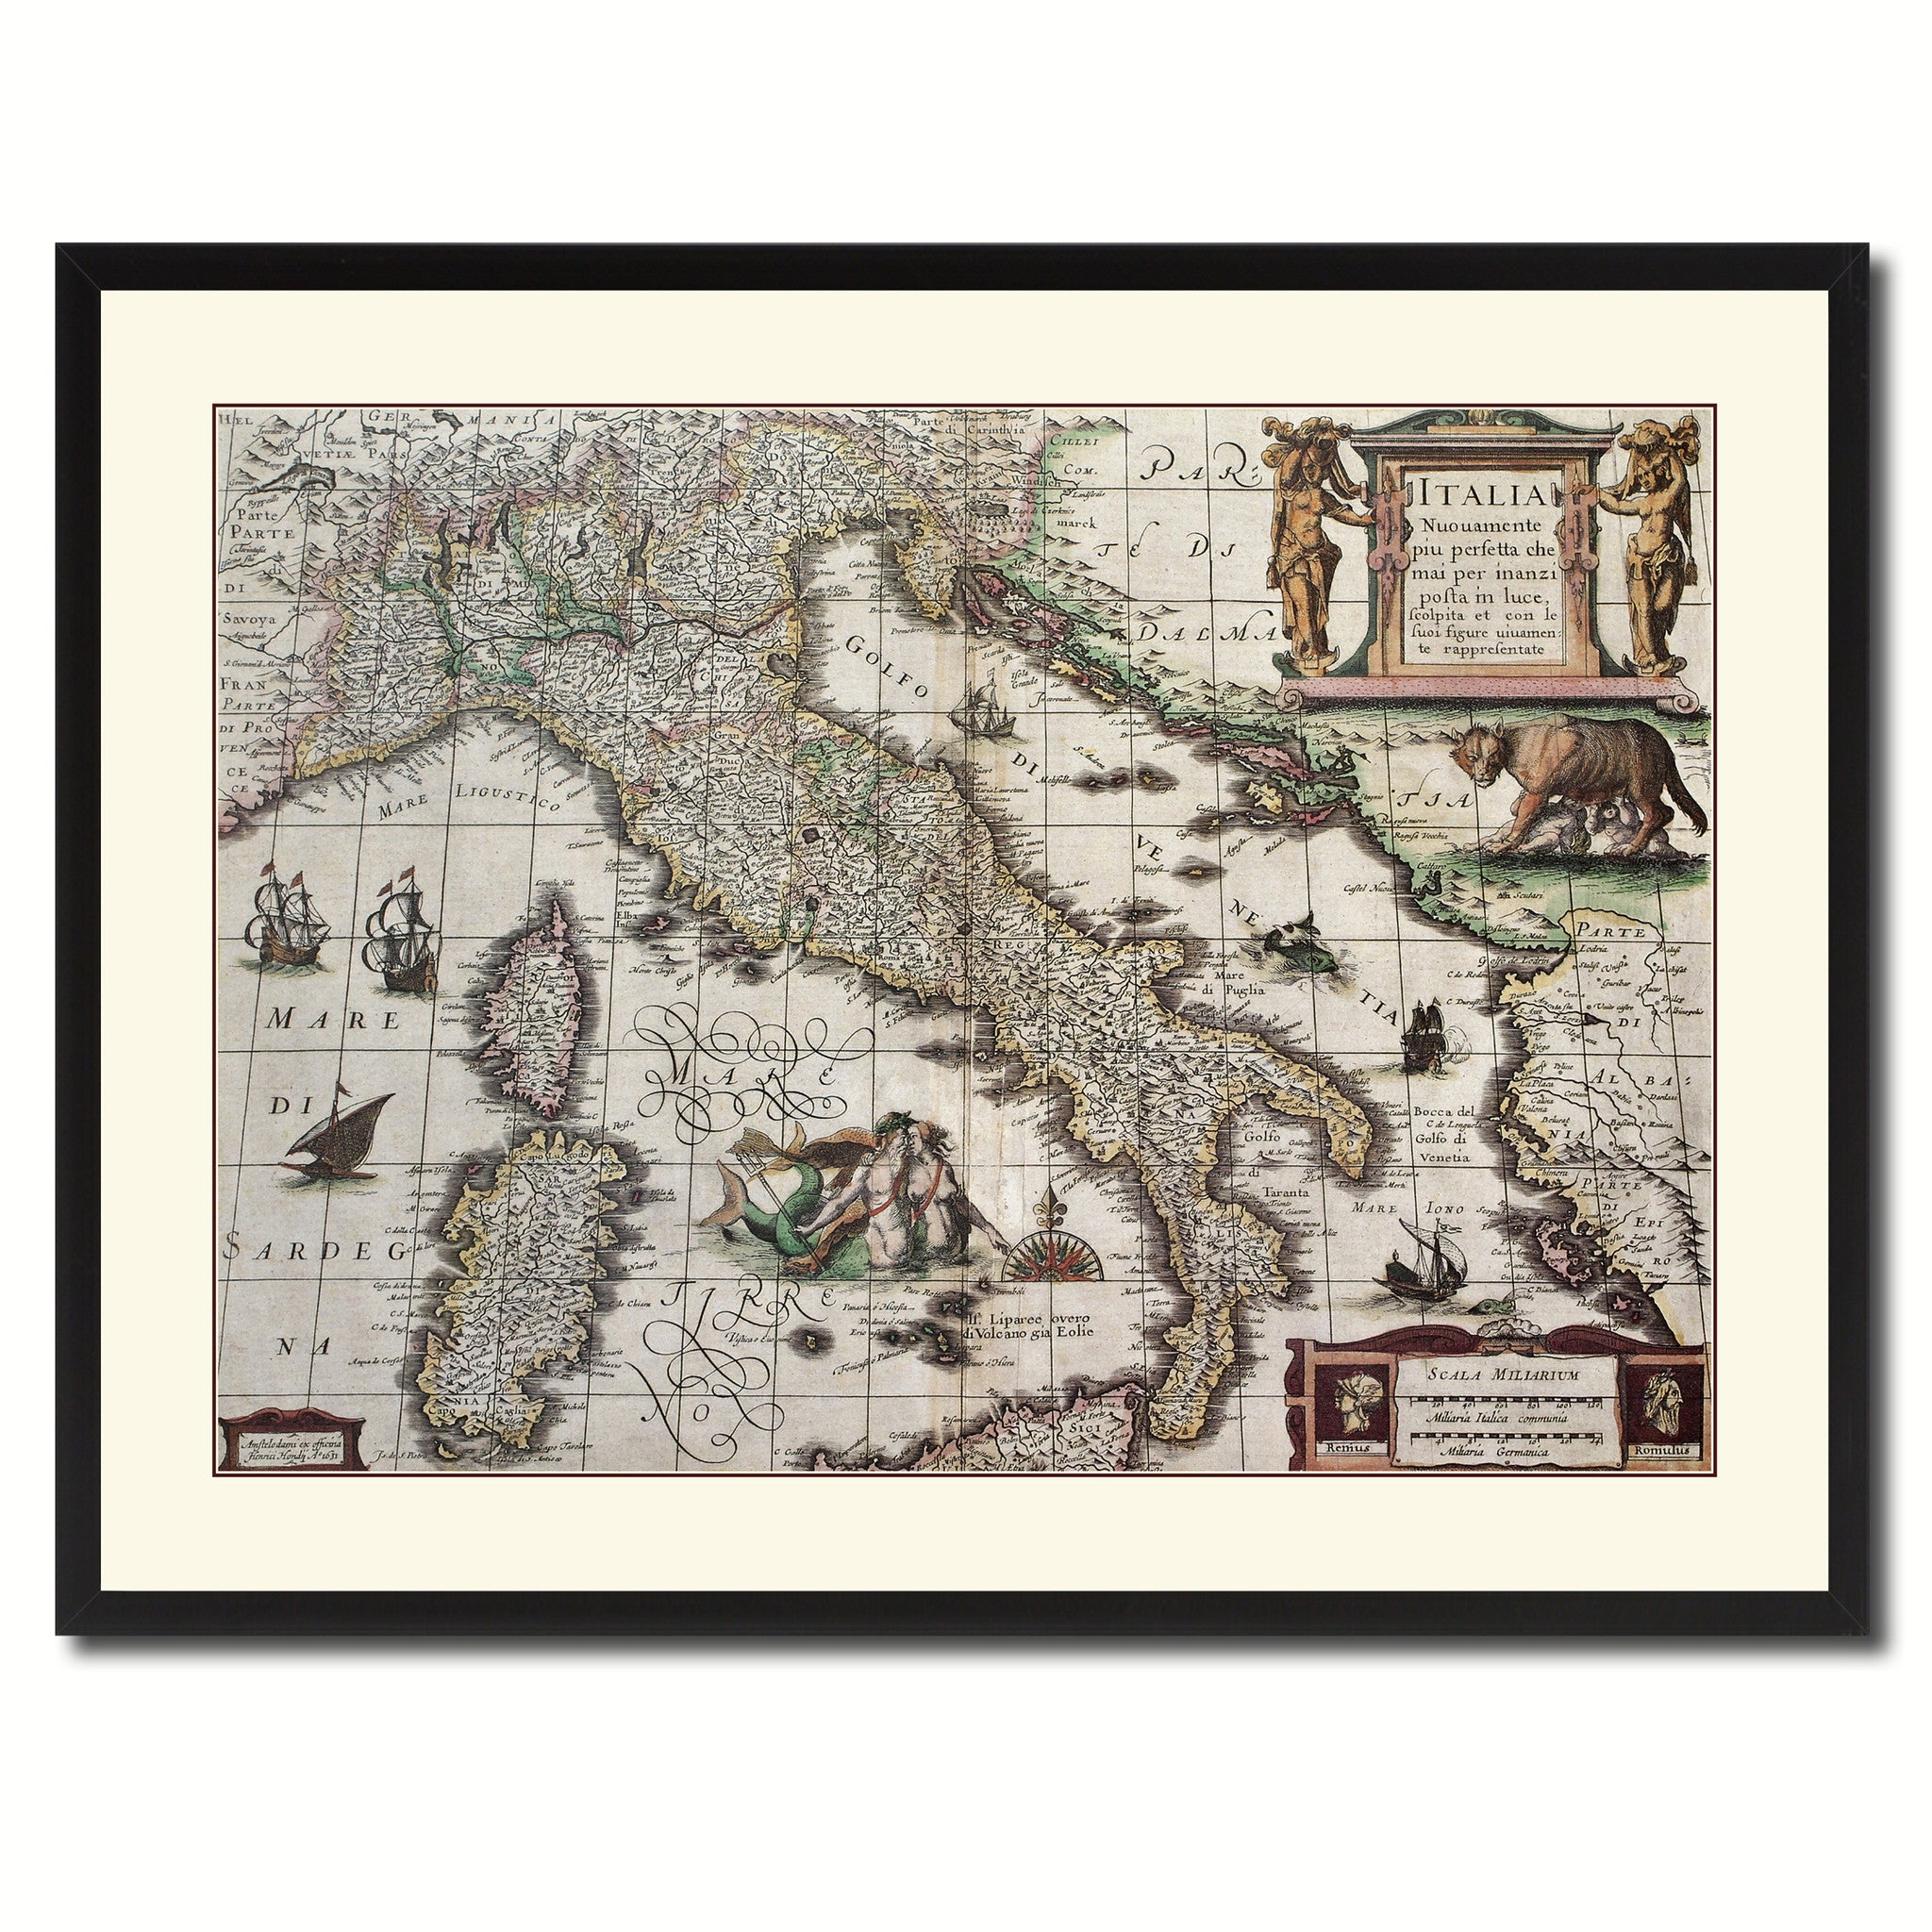 Italy Vintage Antique Map Wall Art Home Decor Gift Ideas